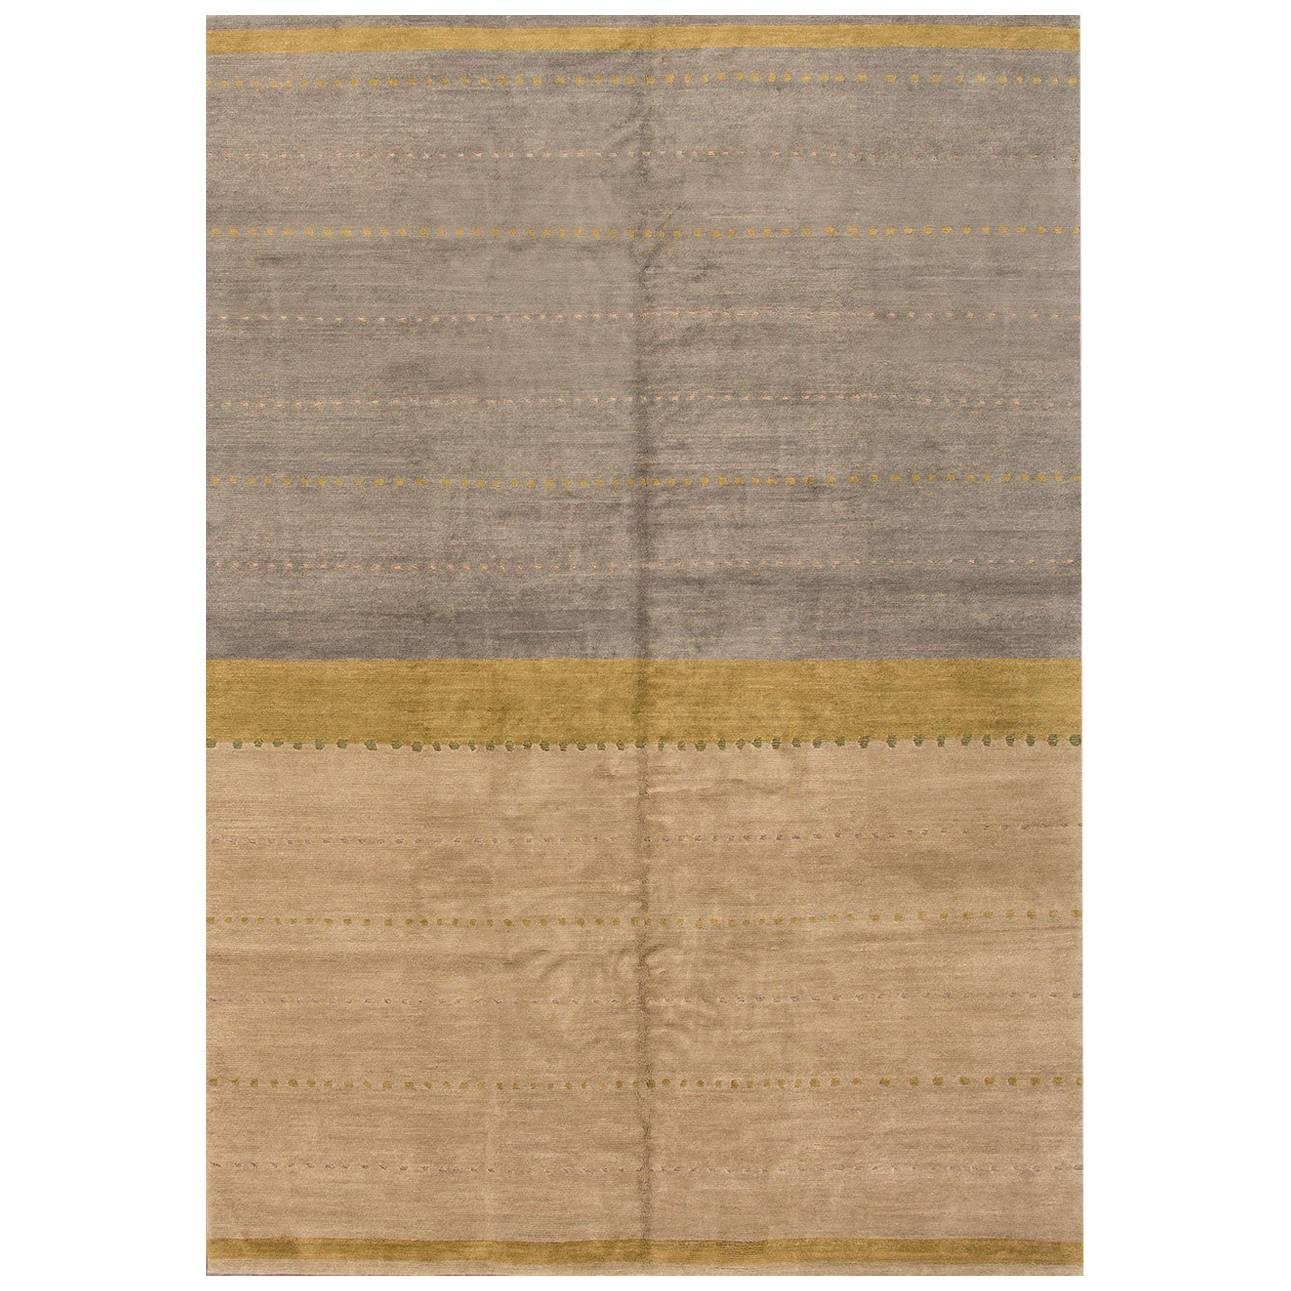 21st Cent. Contemporary Beige and Gray Tibetan Rug, 10x14